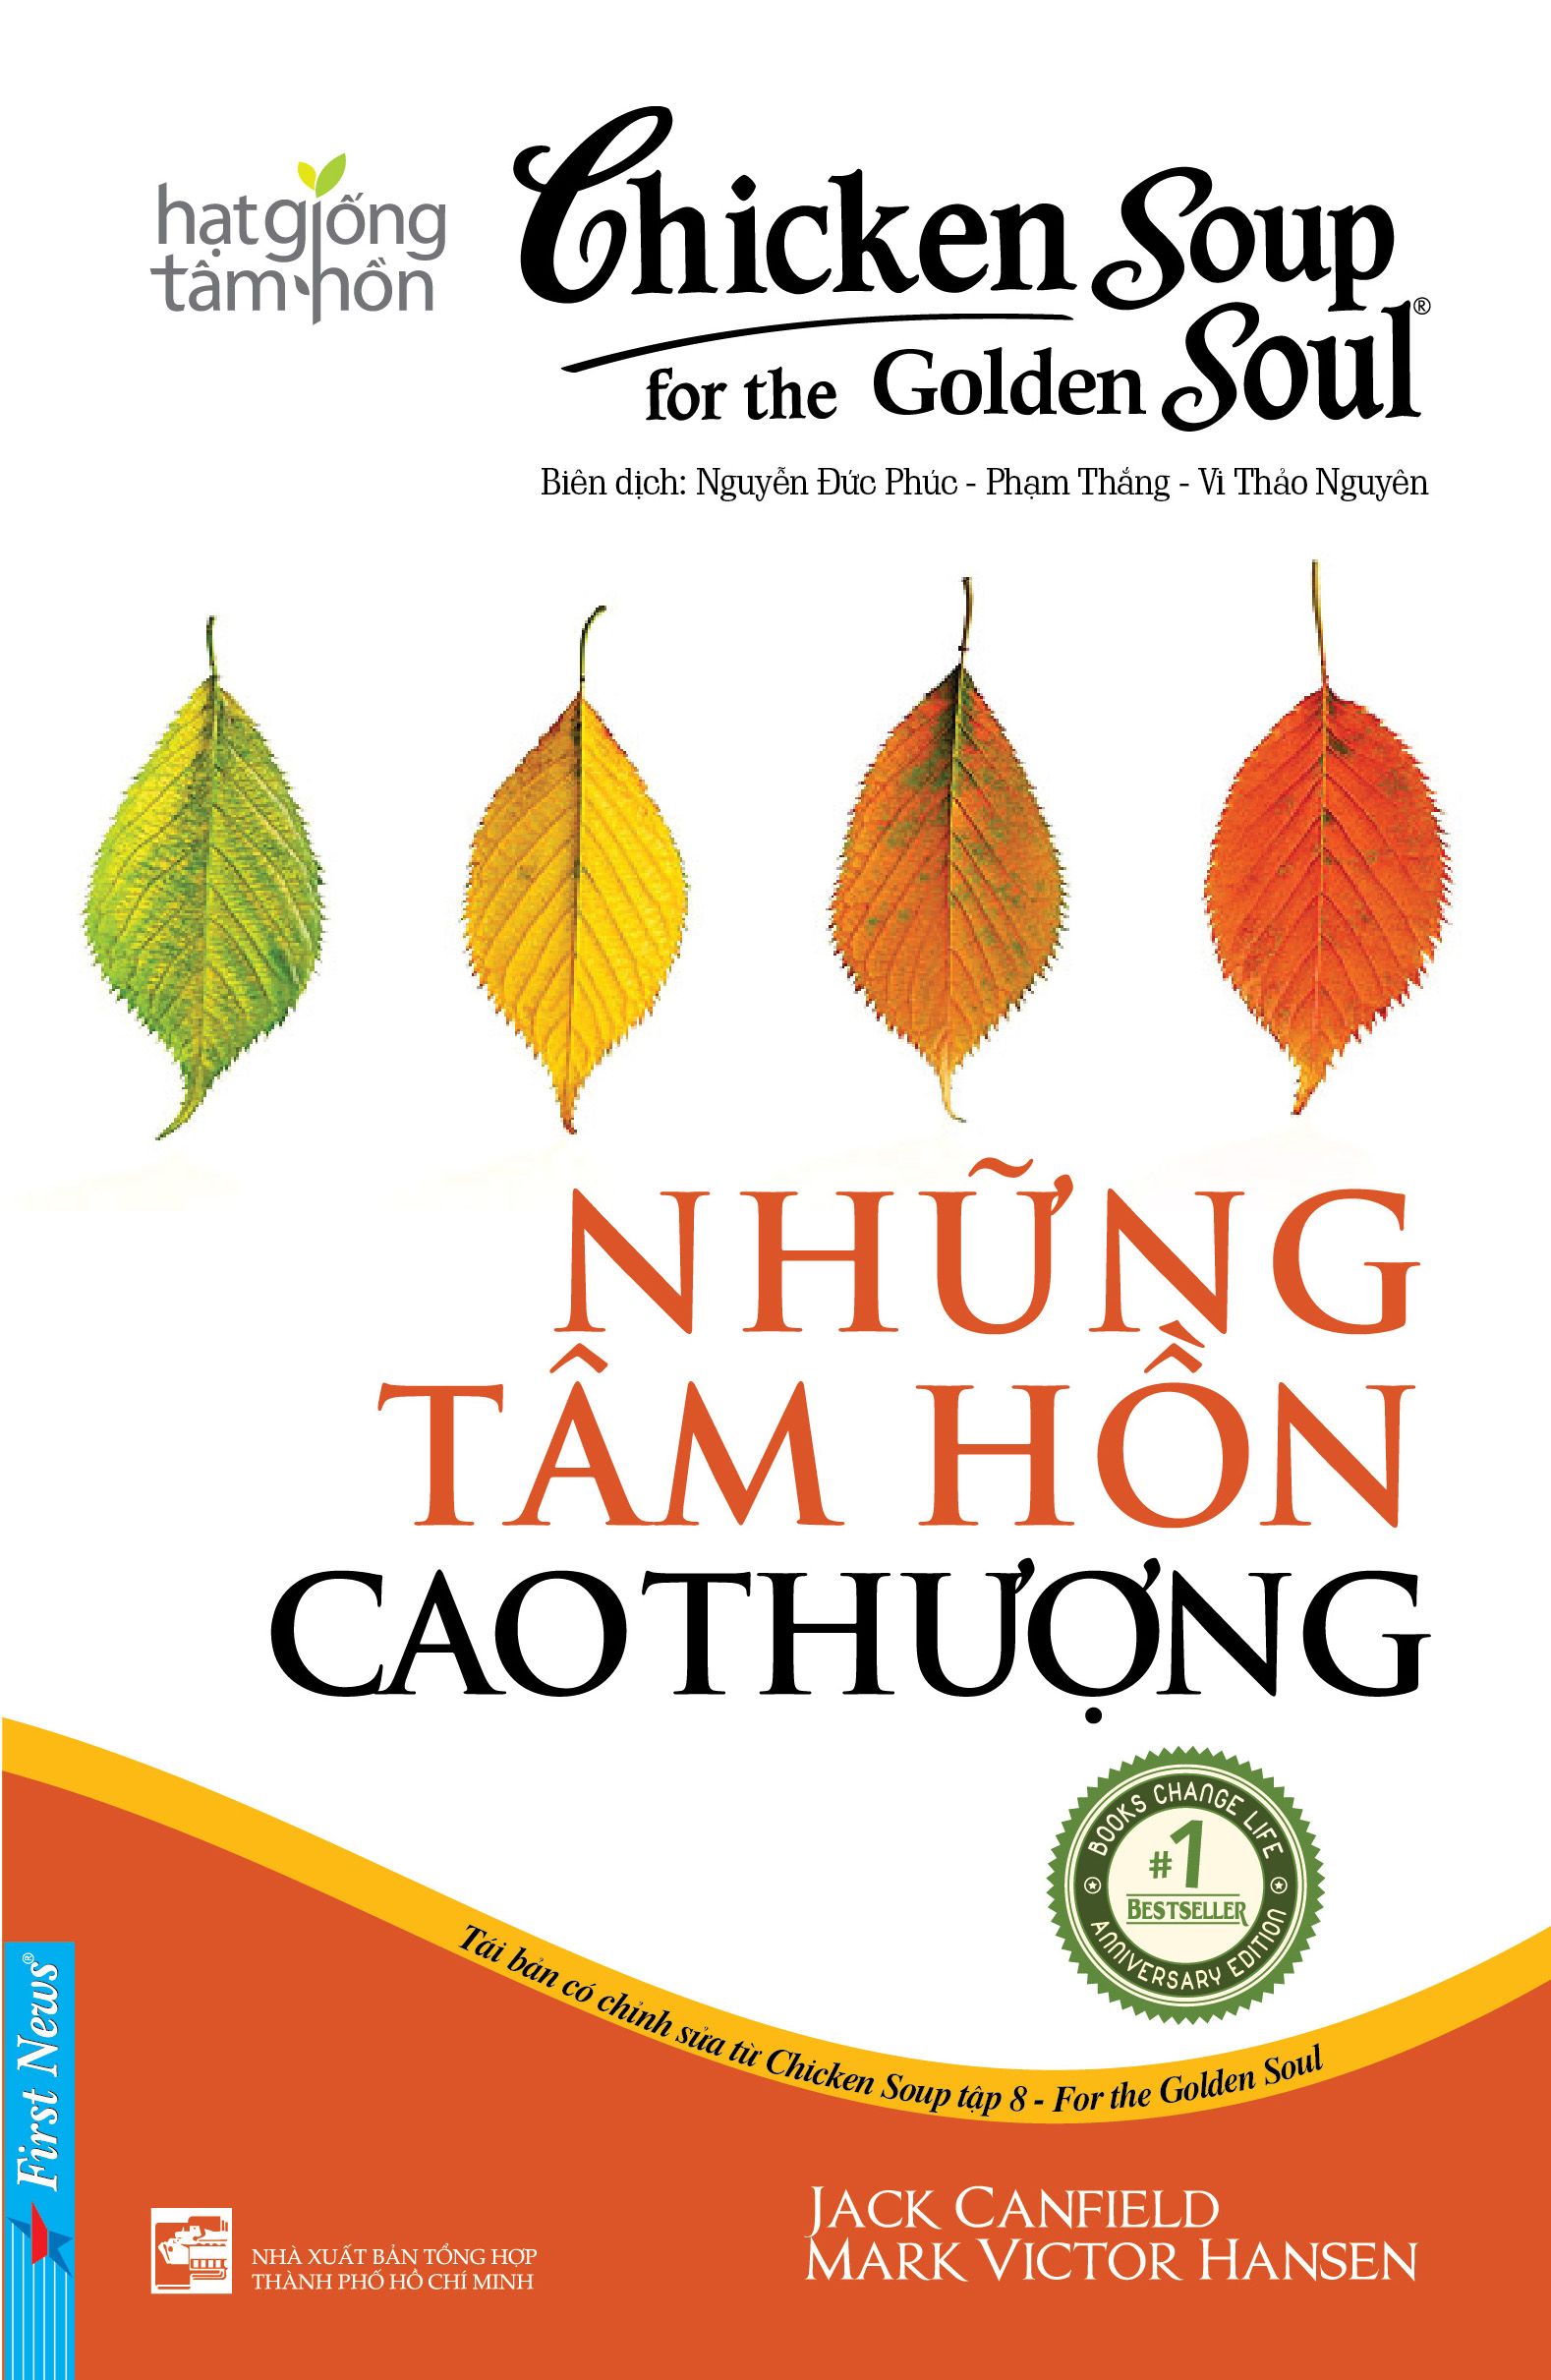 Chicken Soup For The Soul (Tập 8)  - Những Tâm Hồn Cao Thượng - 6318560050279,62_11255806,46000,tiki.vn,Chicken-Soup-For-The-Soul-Tap-8-Nhung-Tam-Hon-Cao-Thuong-62_11255806,Chicken Soup For The Soul (Tập 8)  - Những Tâm Hồn Cao Thượng